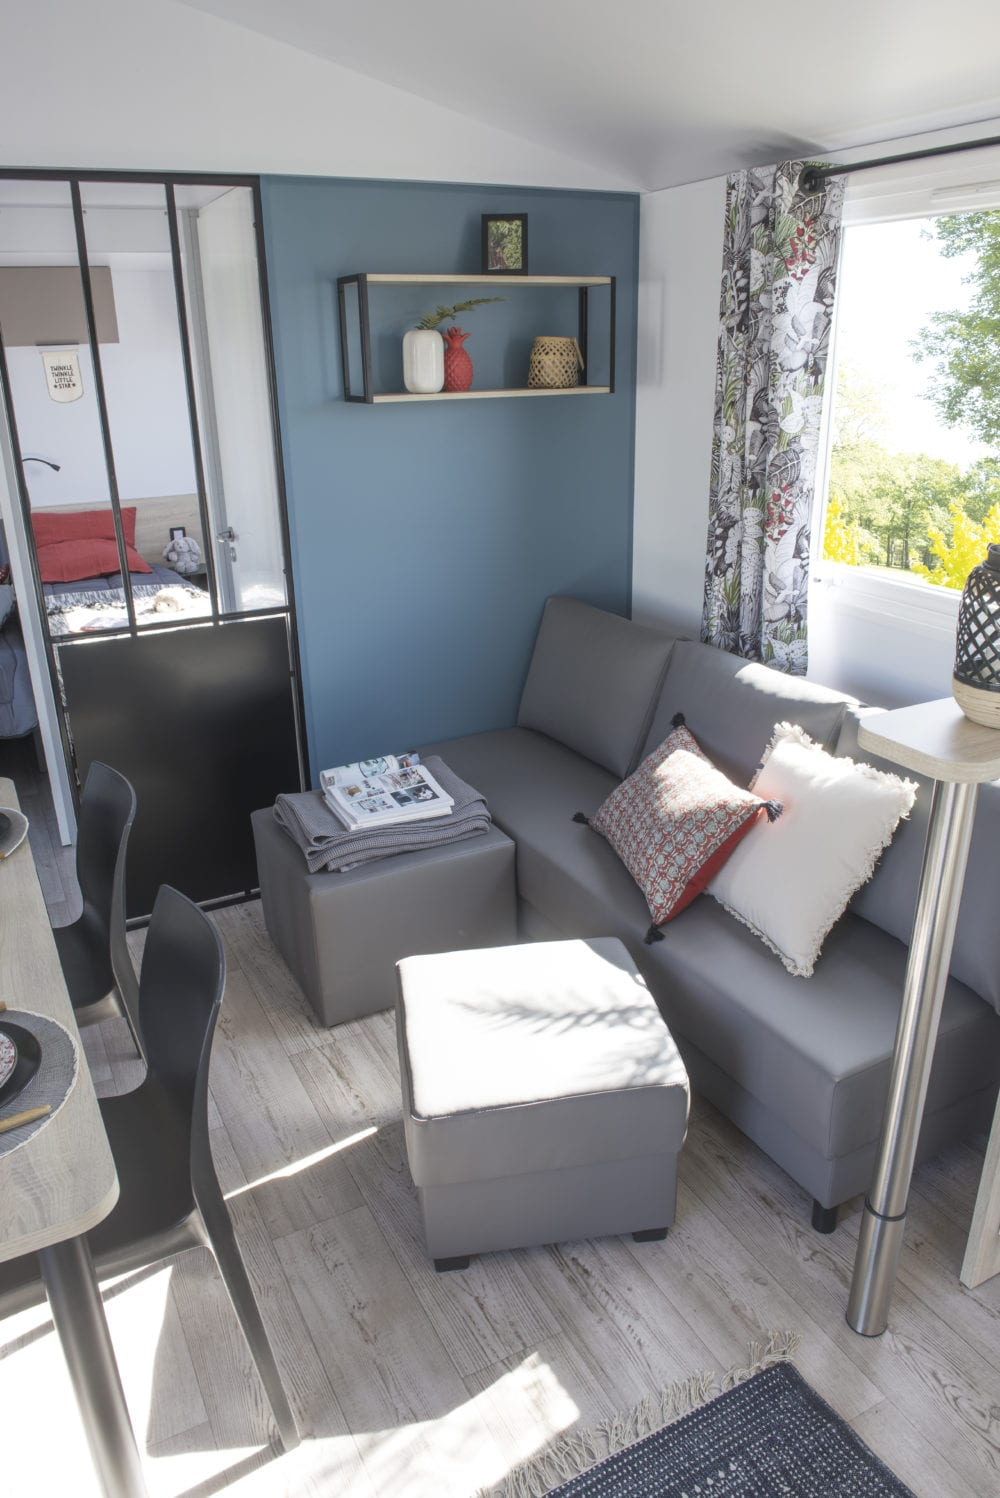 Louisiane Tamaris - Mobil home neuf - Privilège - 2019 - Zen Mobil homes